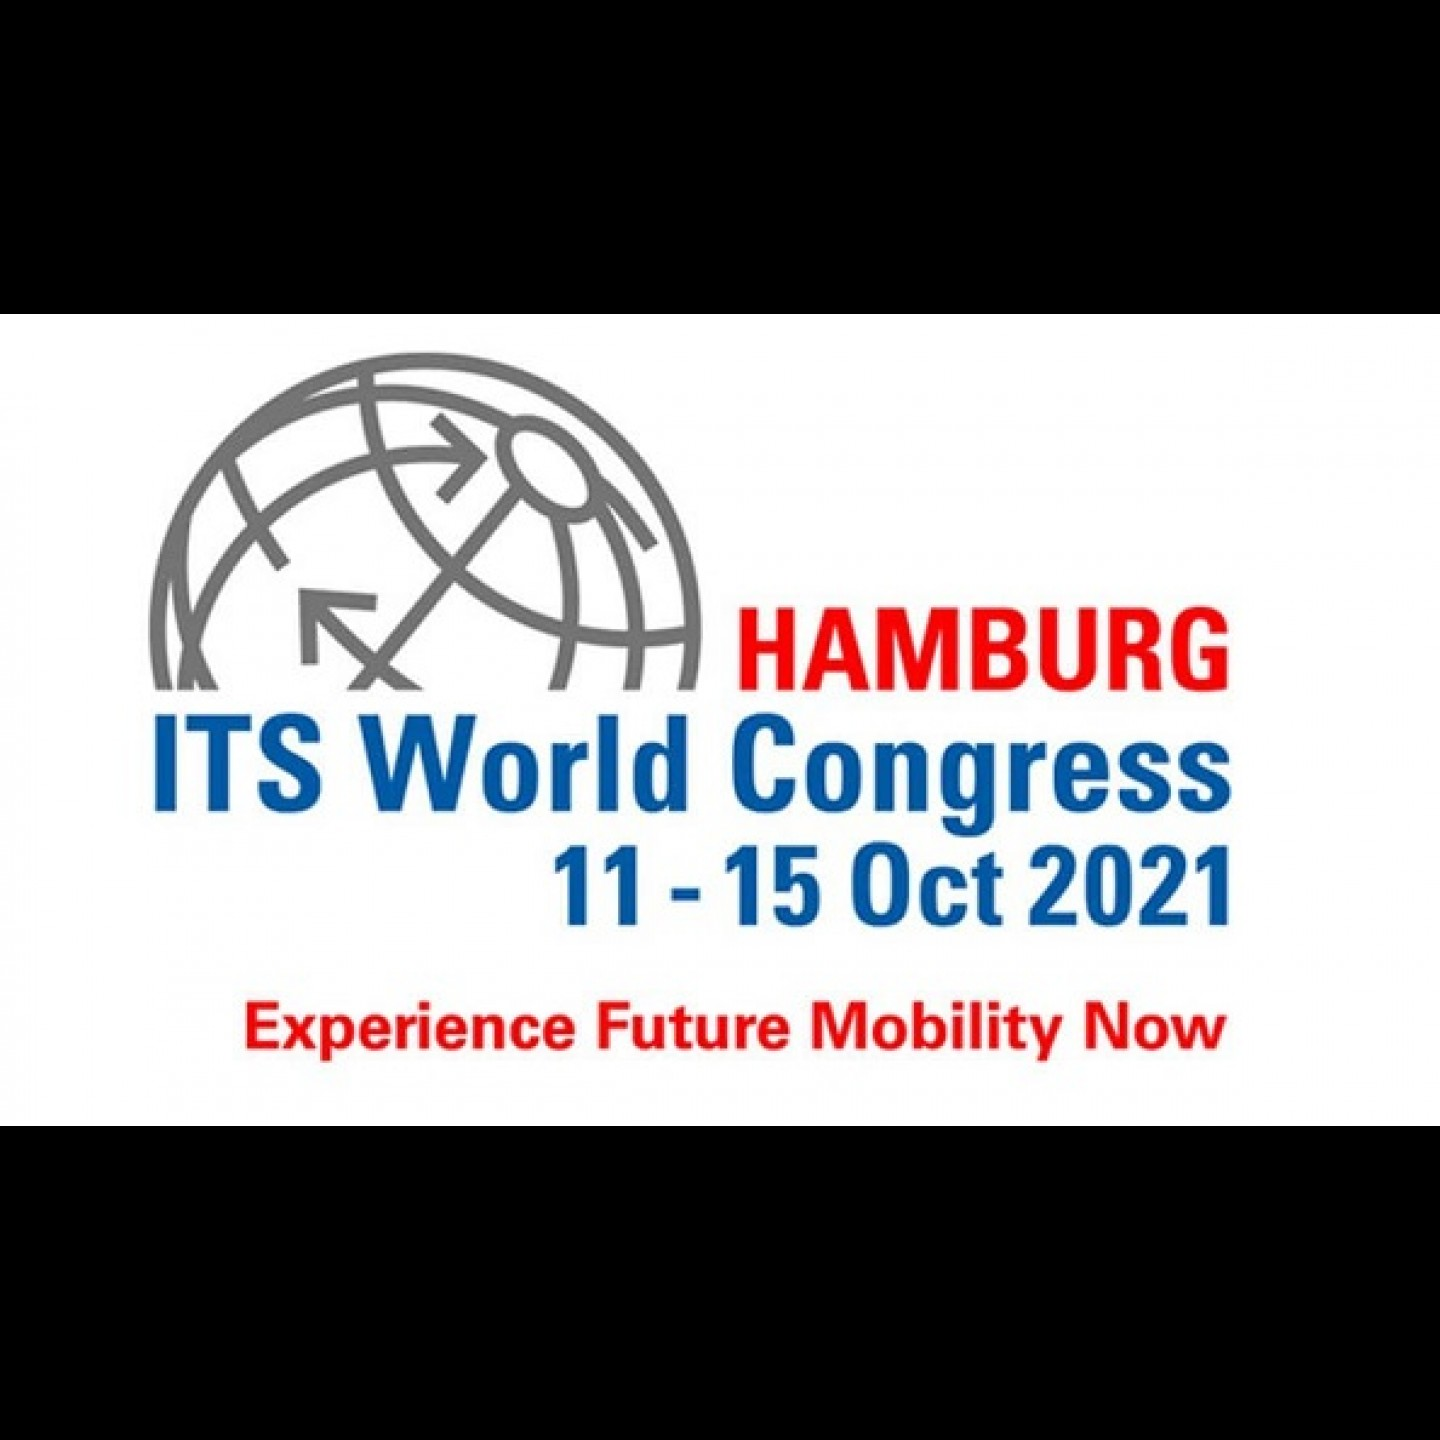 World Congress Submissions Extended to Feb 12